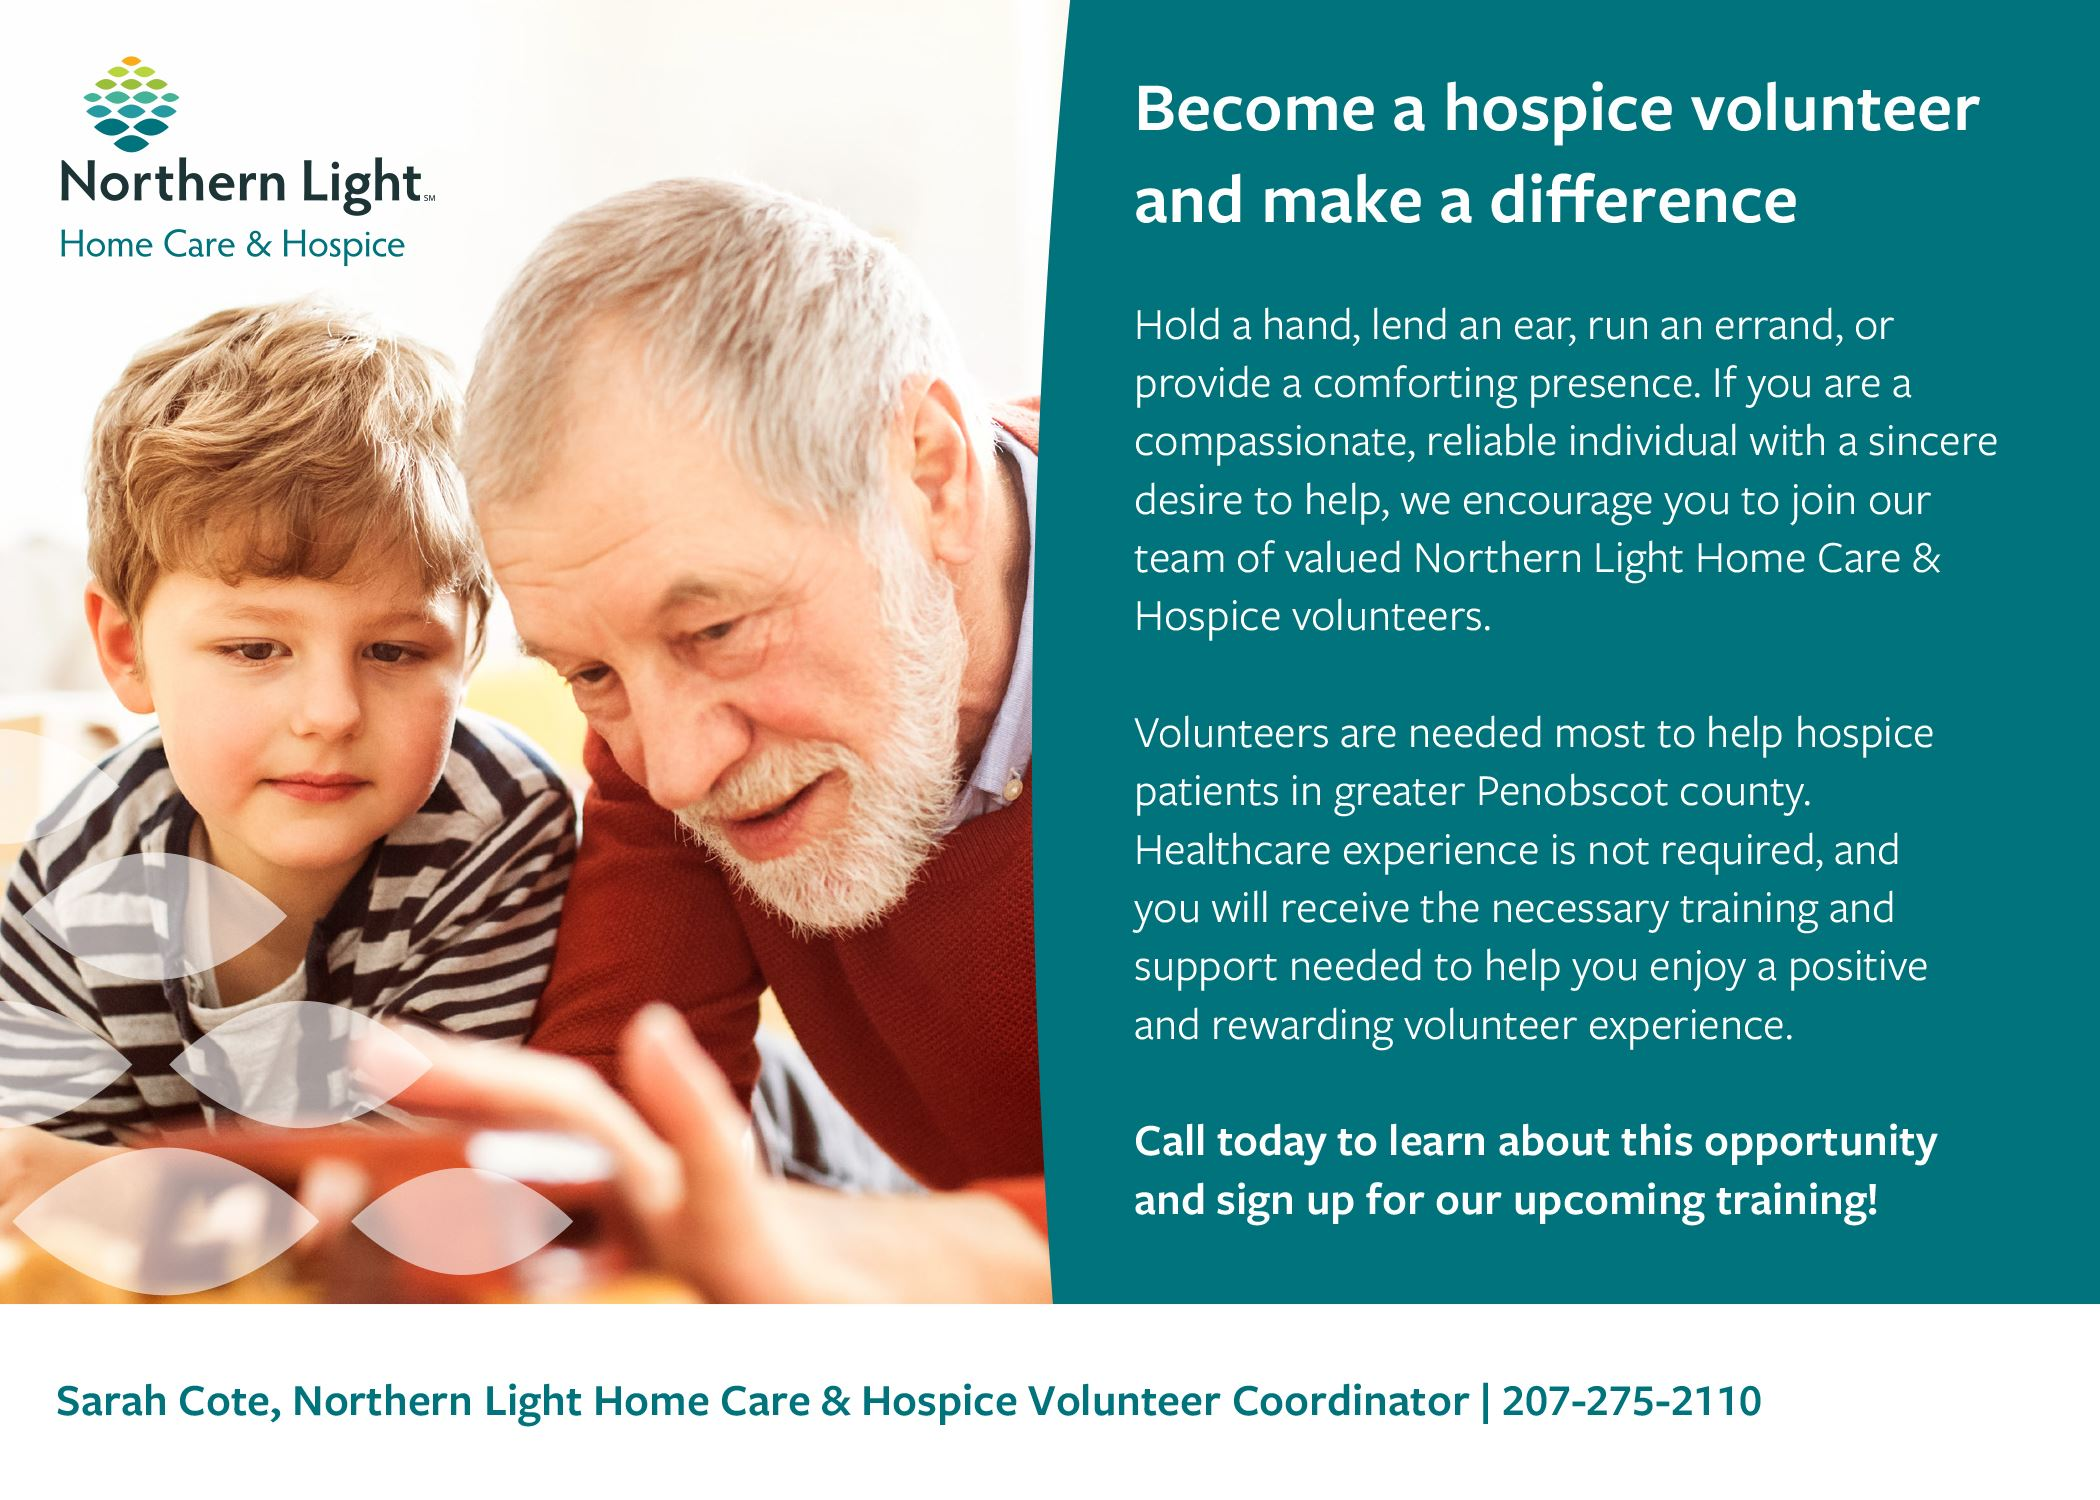 Home Care and Hospice Volunteer Postcard